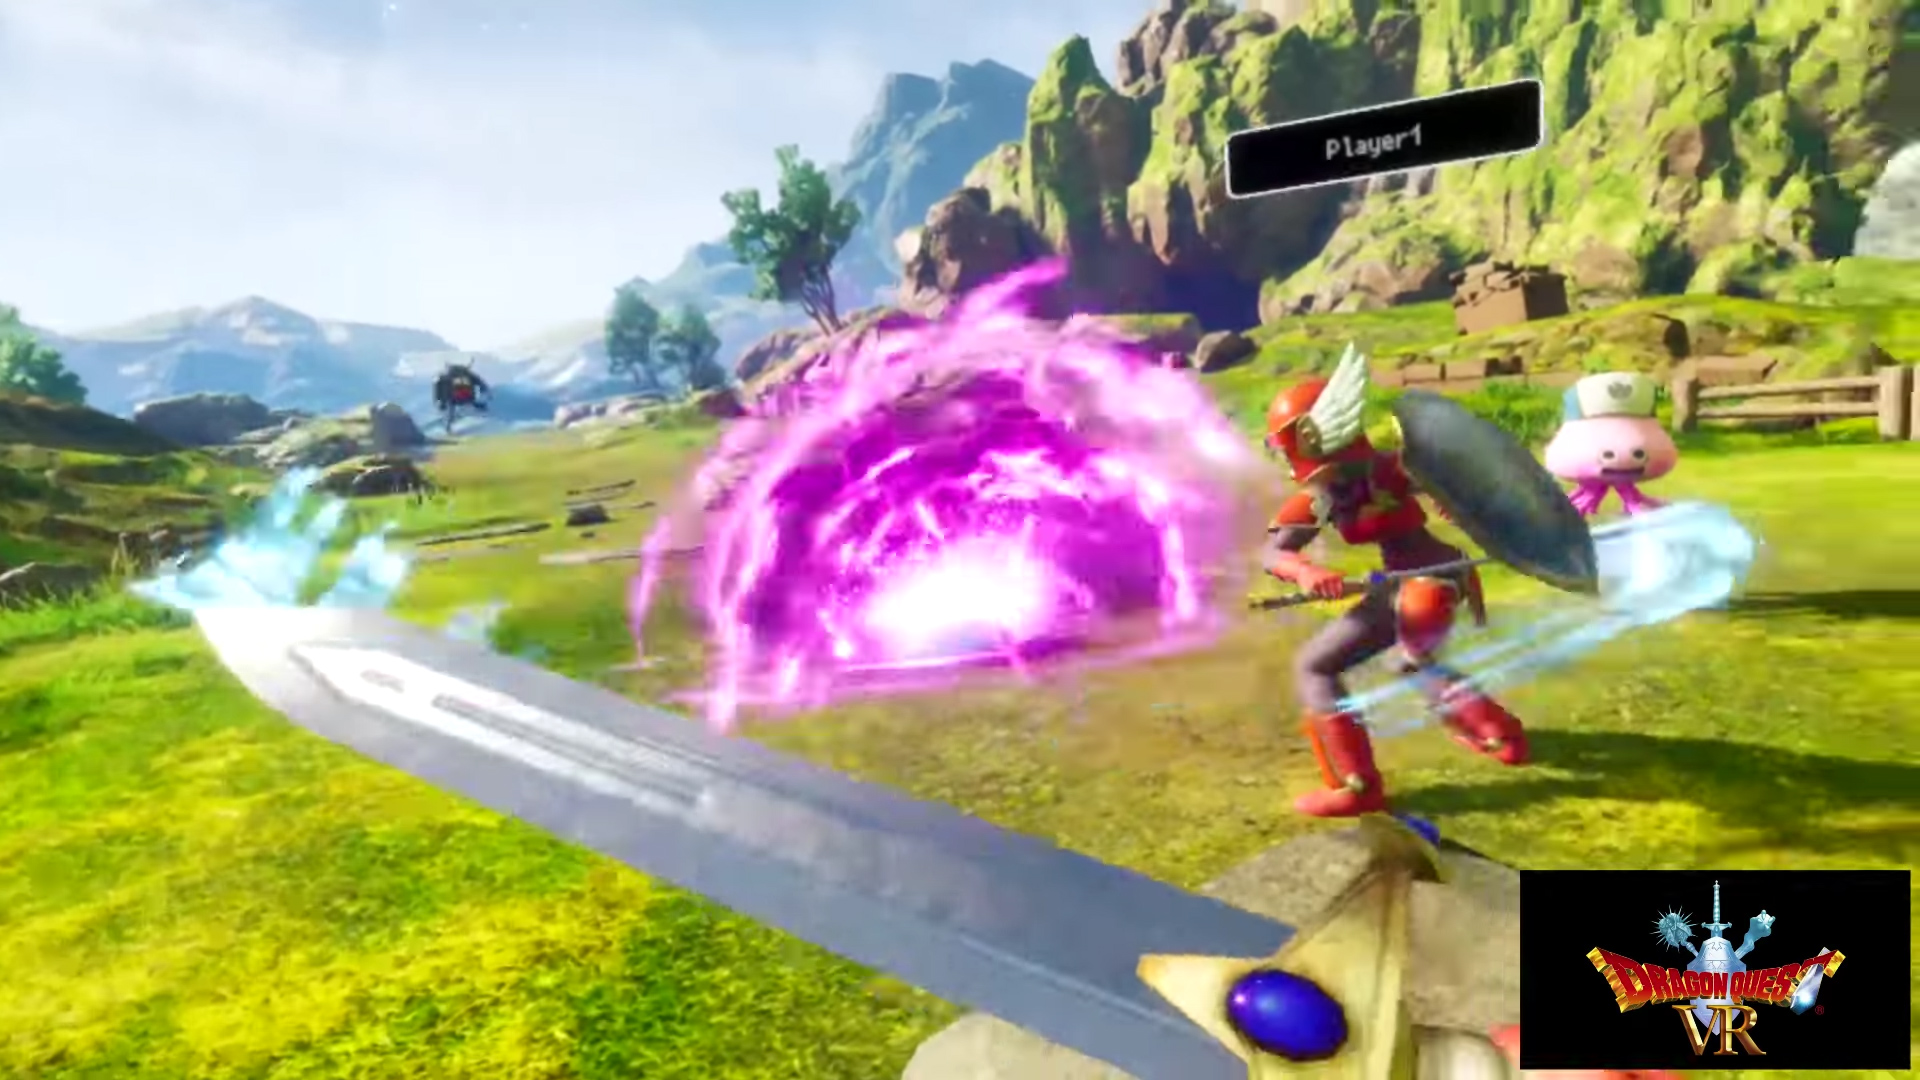 For as simple as it is, Dragon Quest VR looks dope screenshot